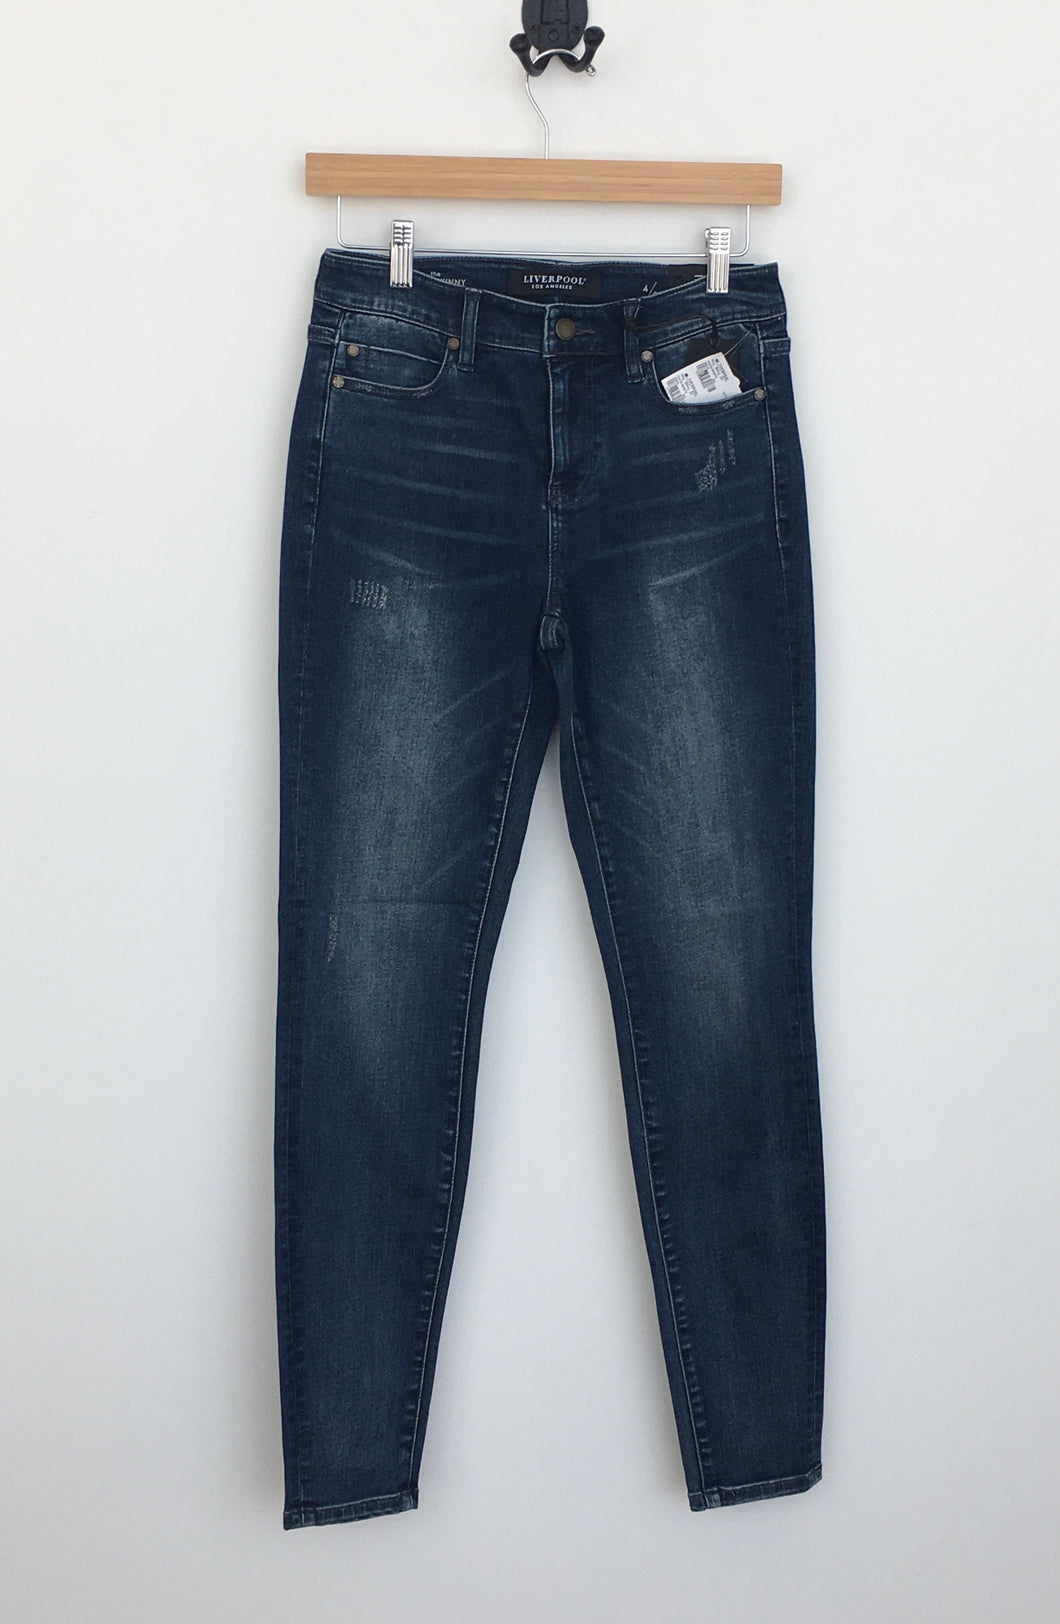 Liverpool Abby Skinny Jeans - 30